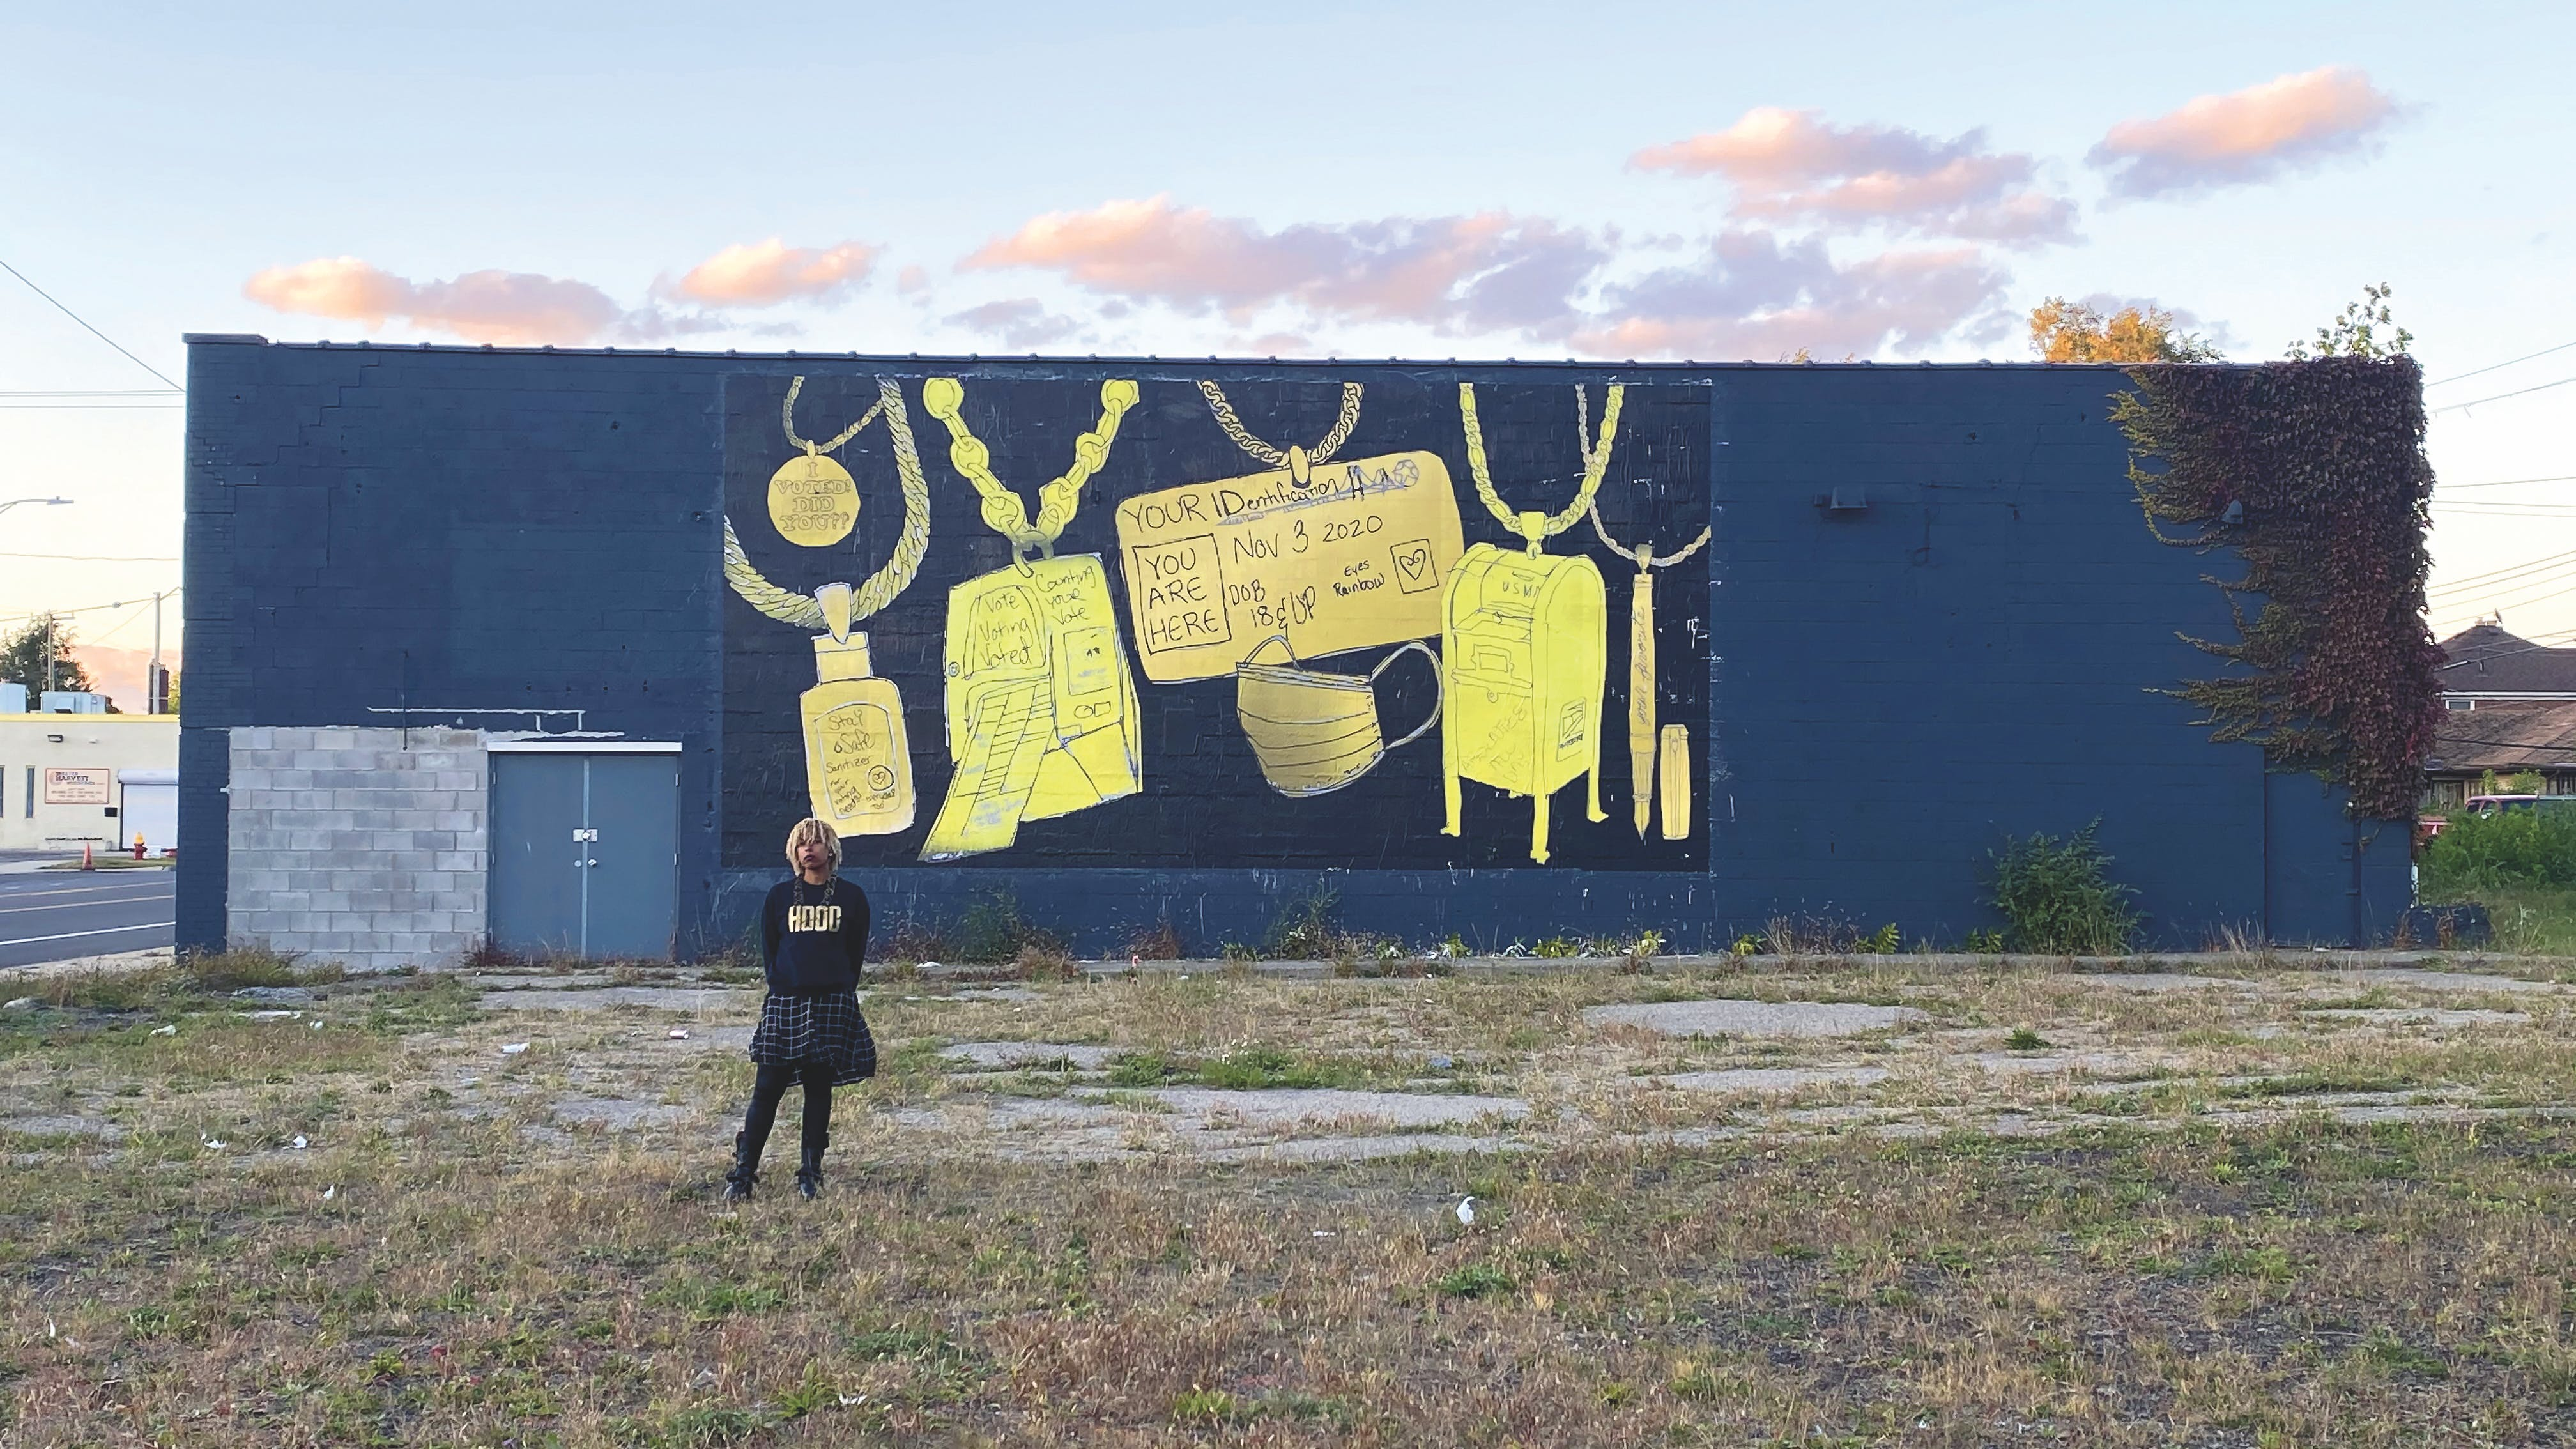 Person standing in empty urban lot with dark blue building behind them featuring a mural with yellow and gold images of various adornments